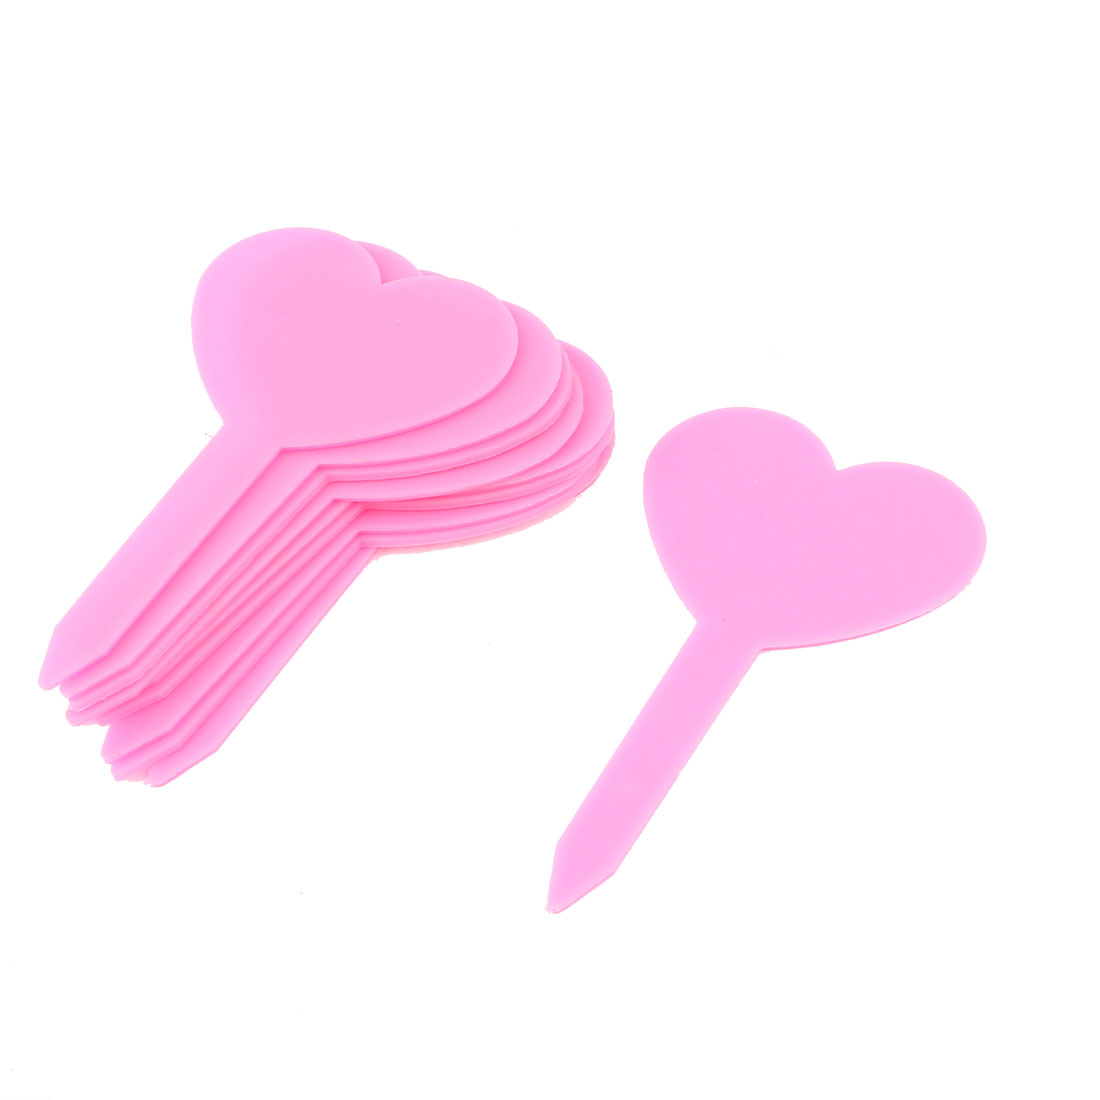 Plastic Heart Shape Nursery Garden Plant Seed Tag Label Marker Stick Pink 10Pcs